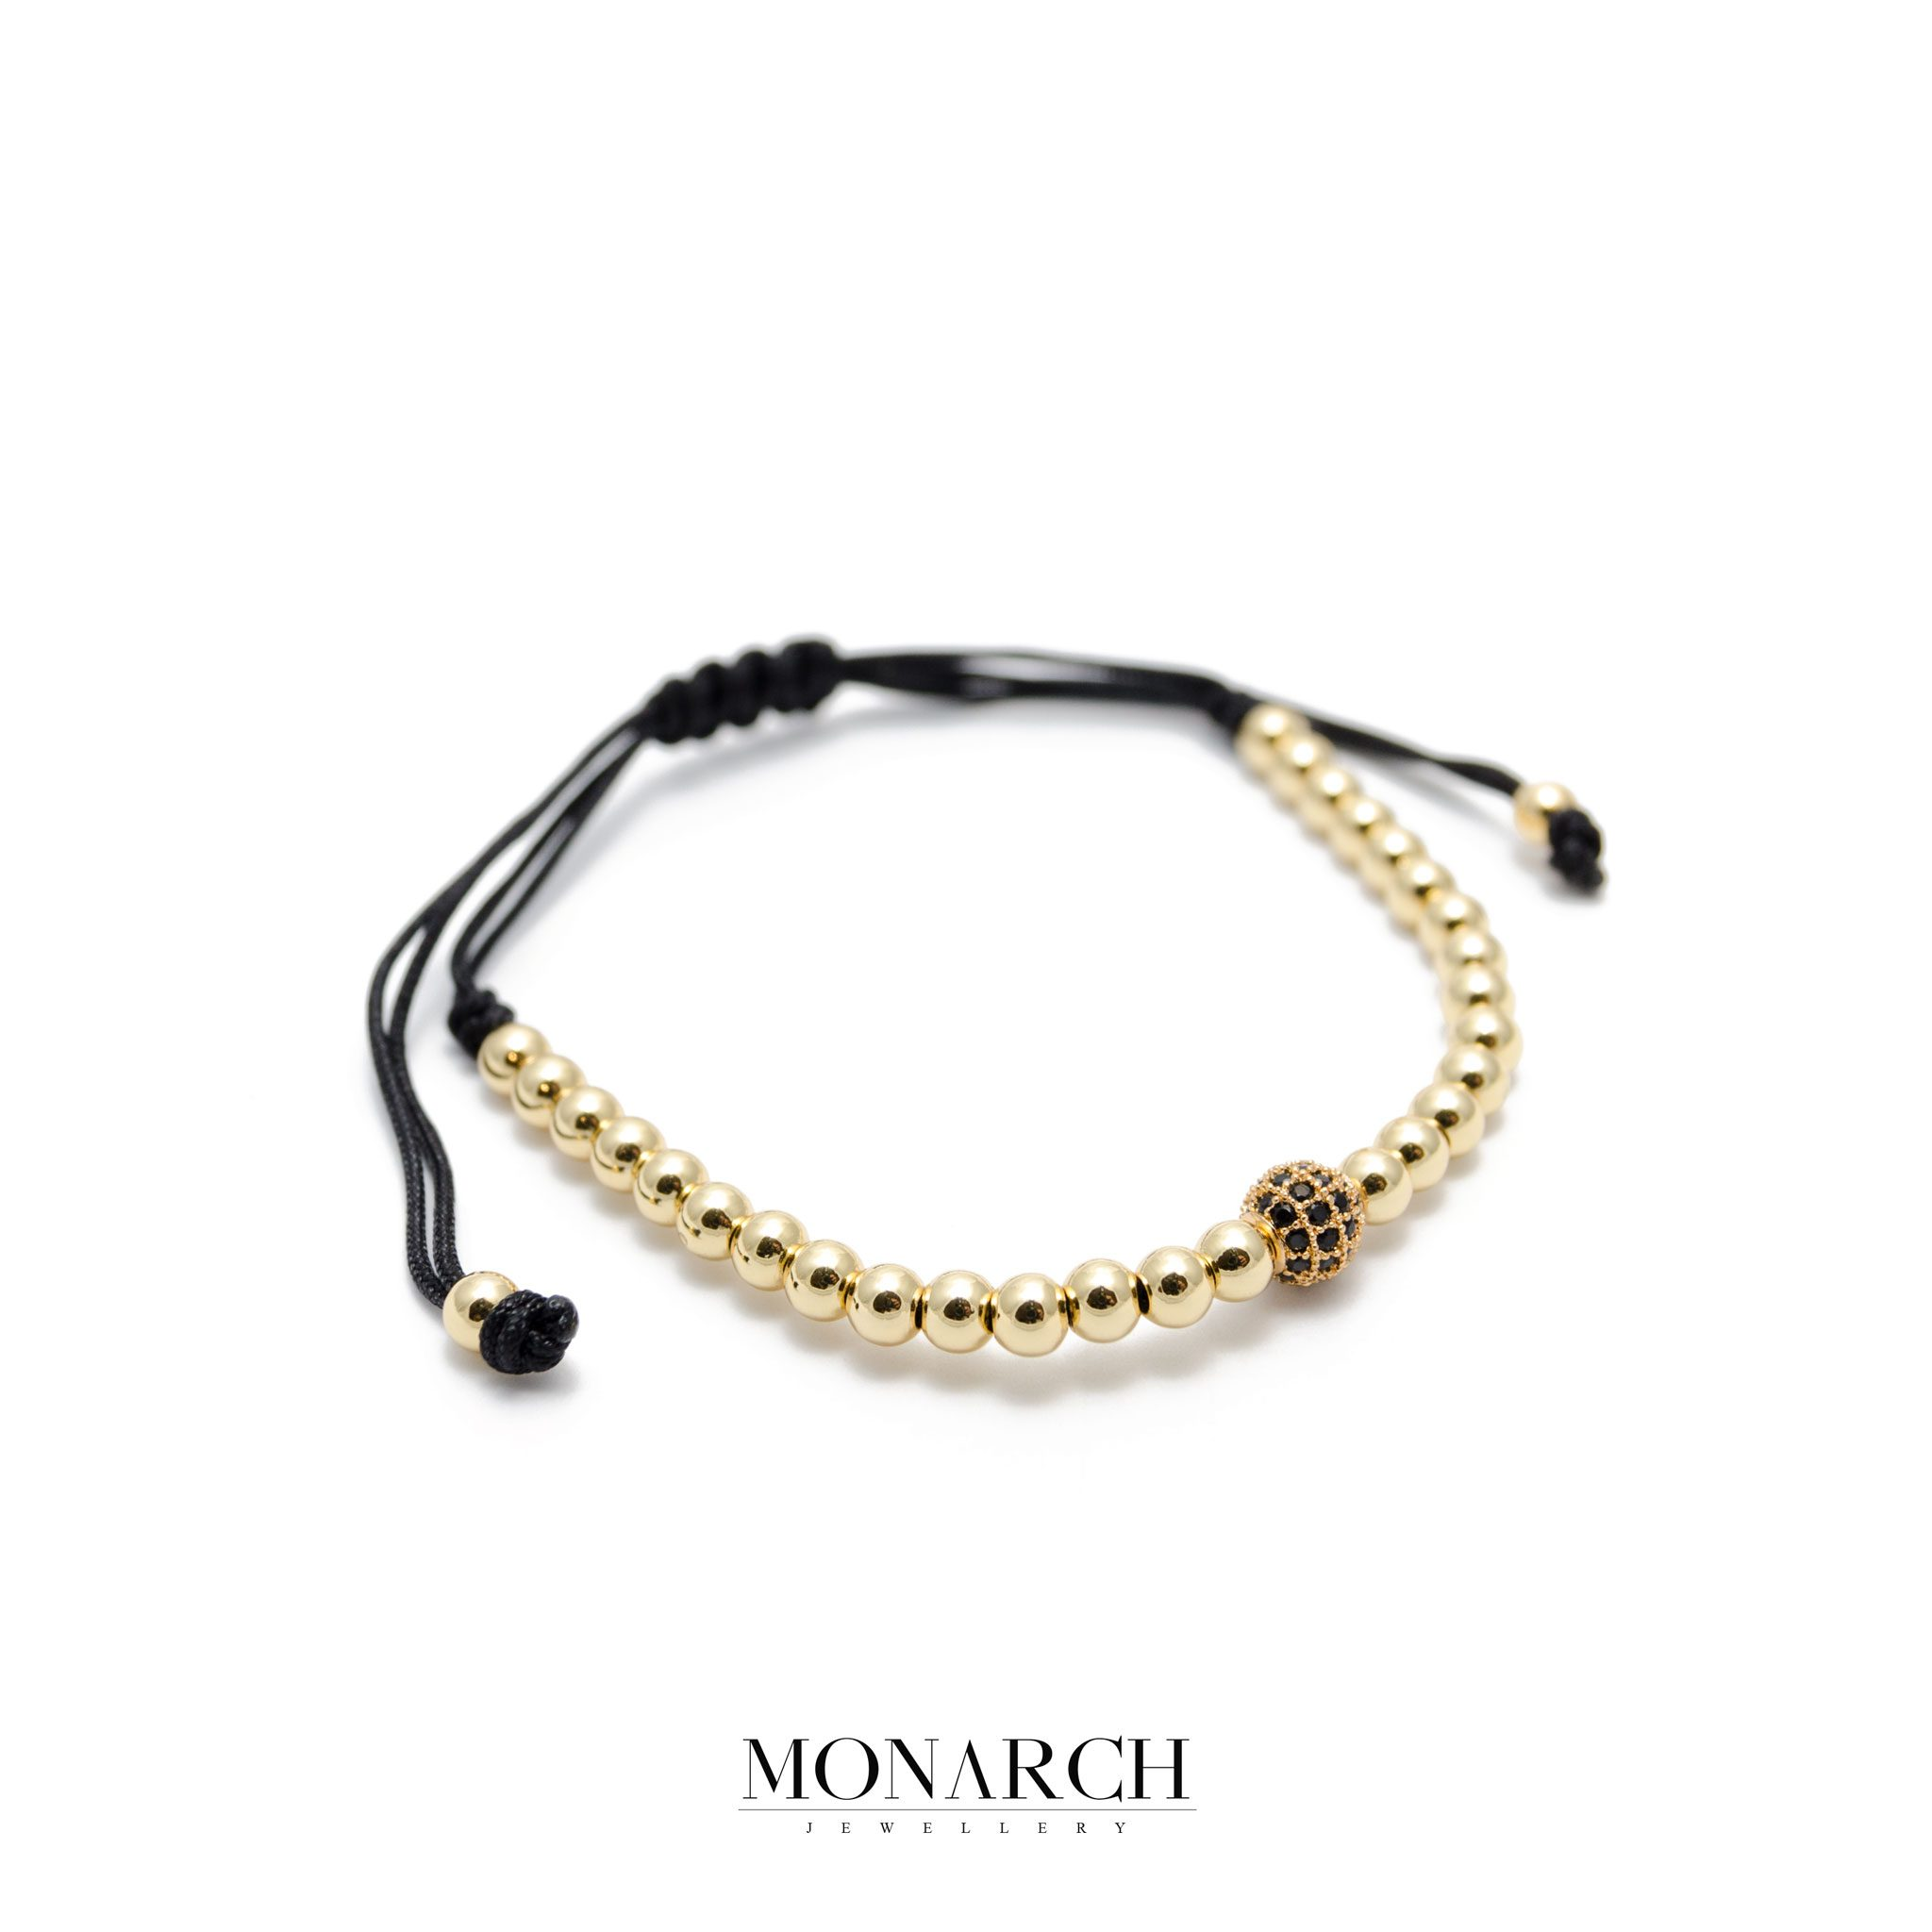 25-Monarch-Jewellery-24k-Gold-Black-Solo-Zircon-Macrame-Bracelet-resized